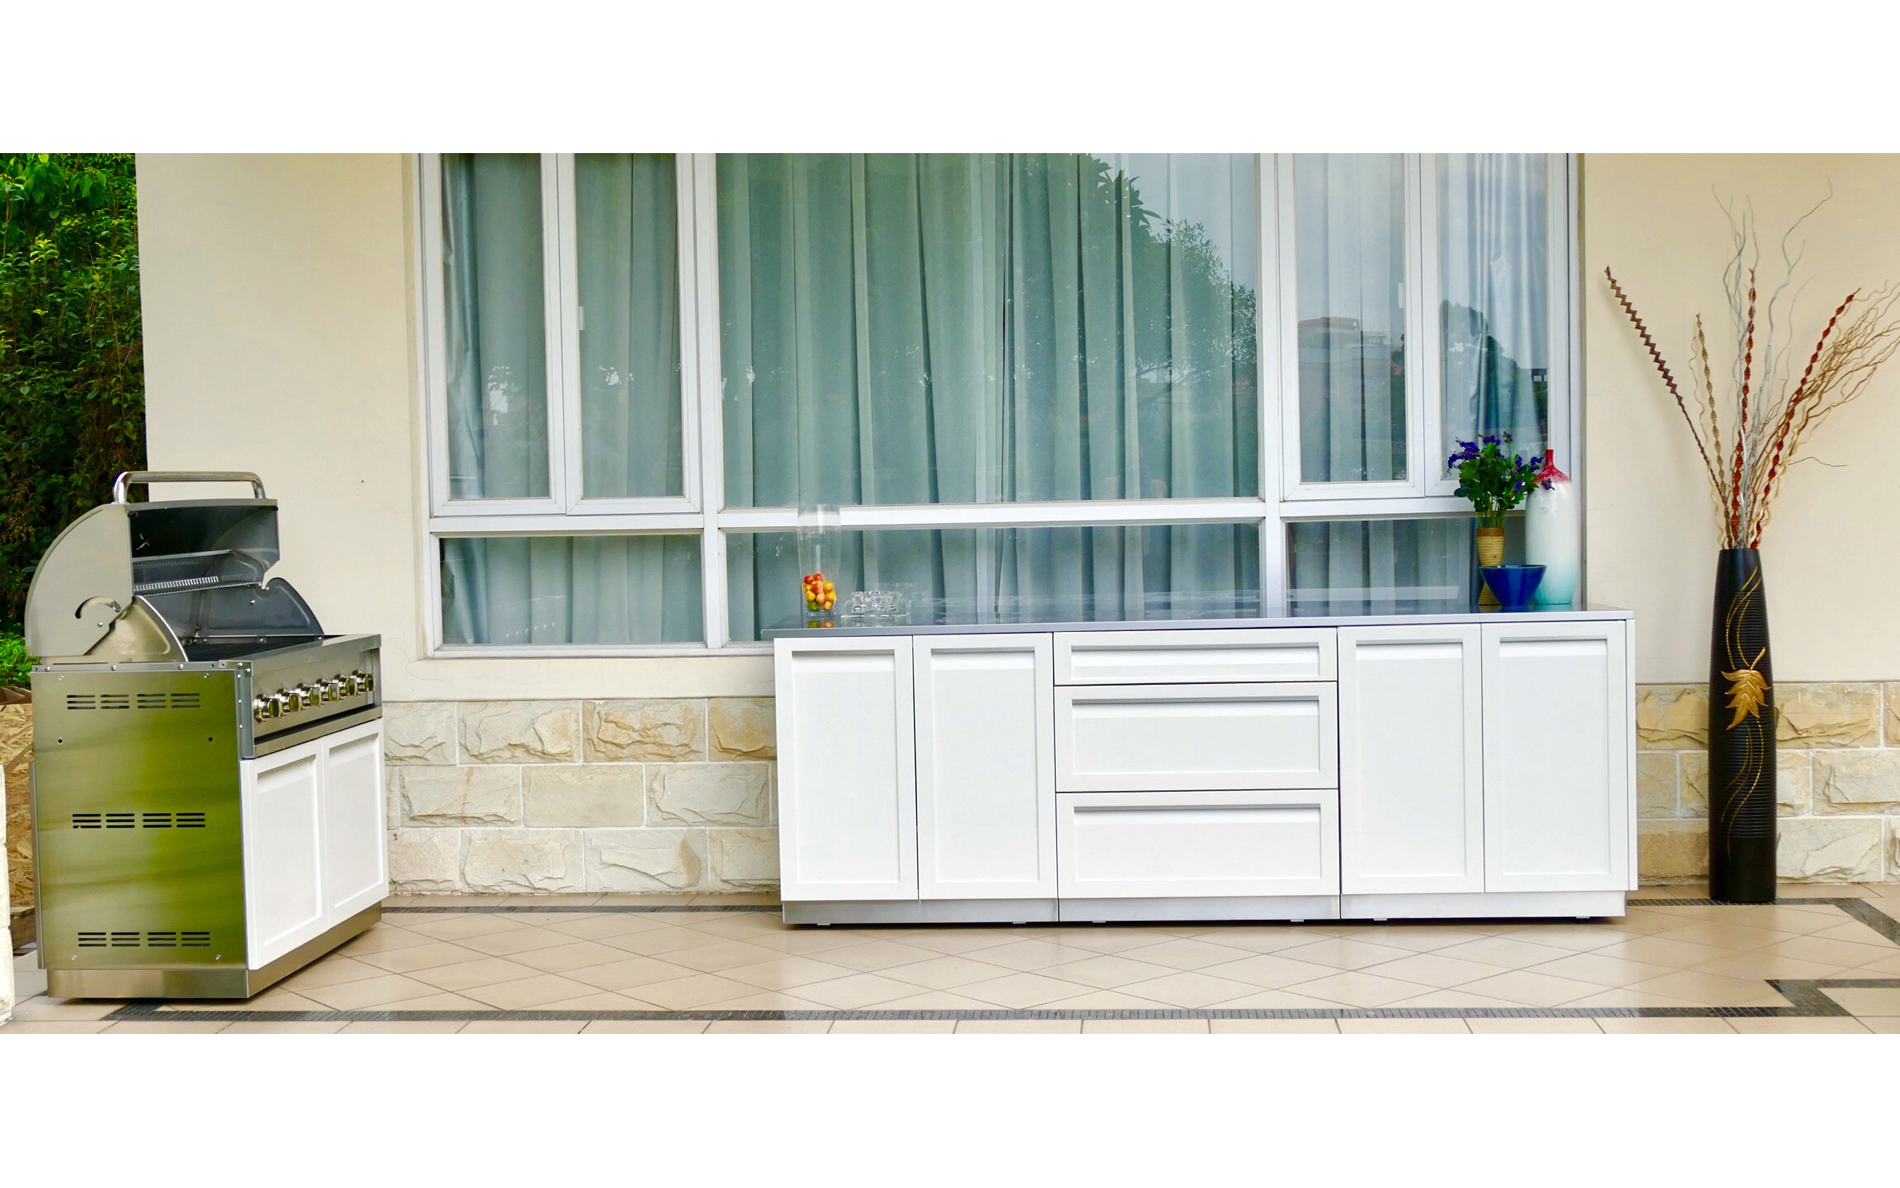 Stainless Steel Cabinets For Outdoor Kitchens. Affordable Outdoor ...